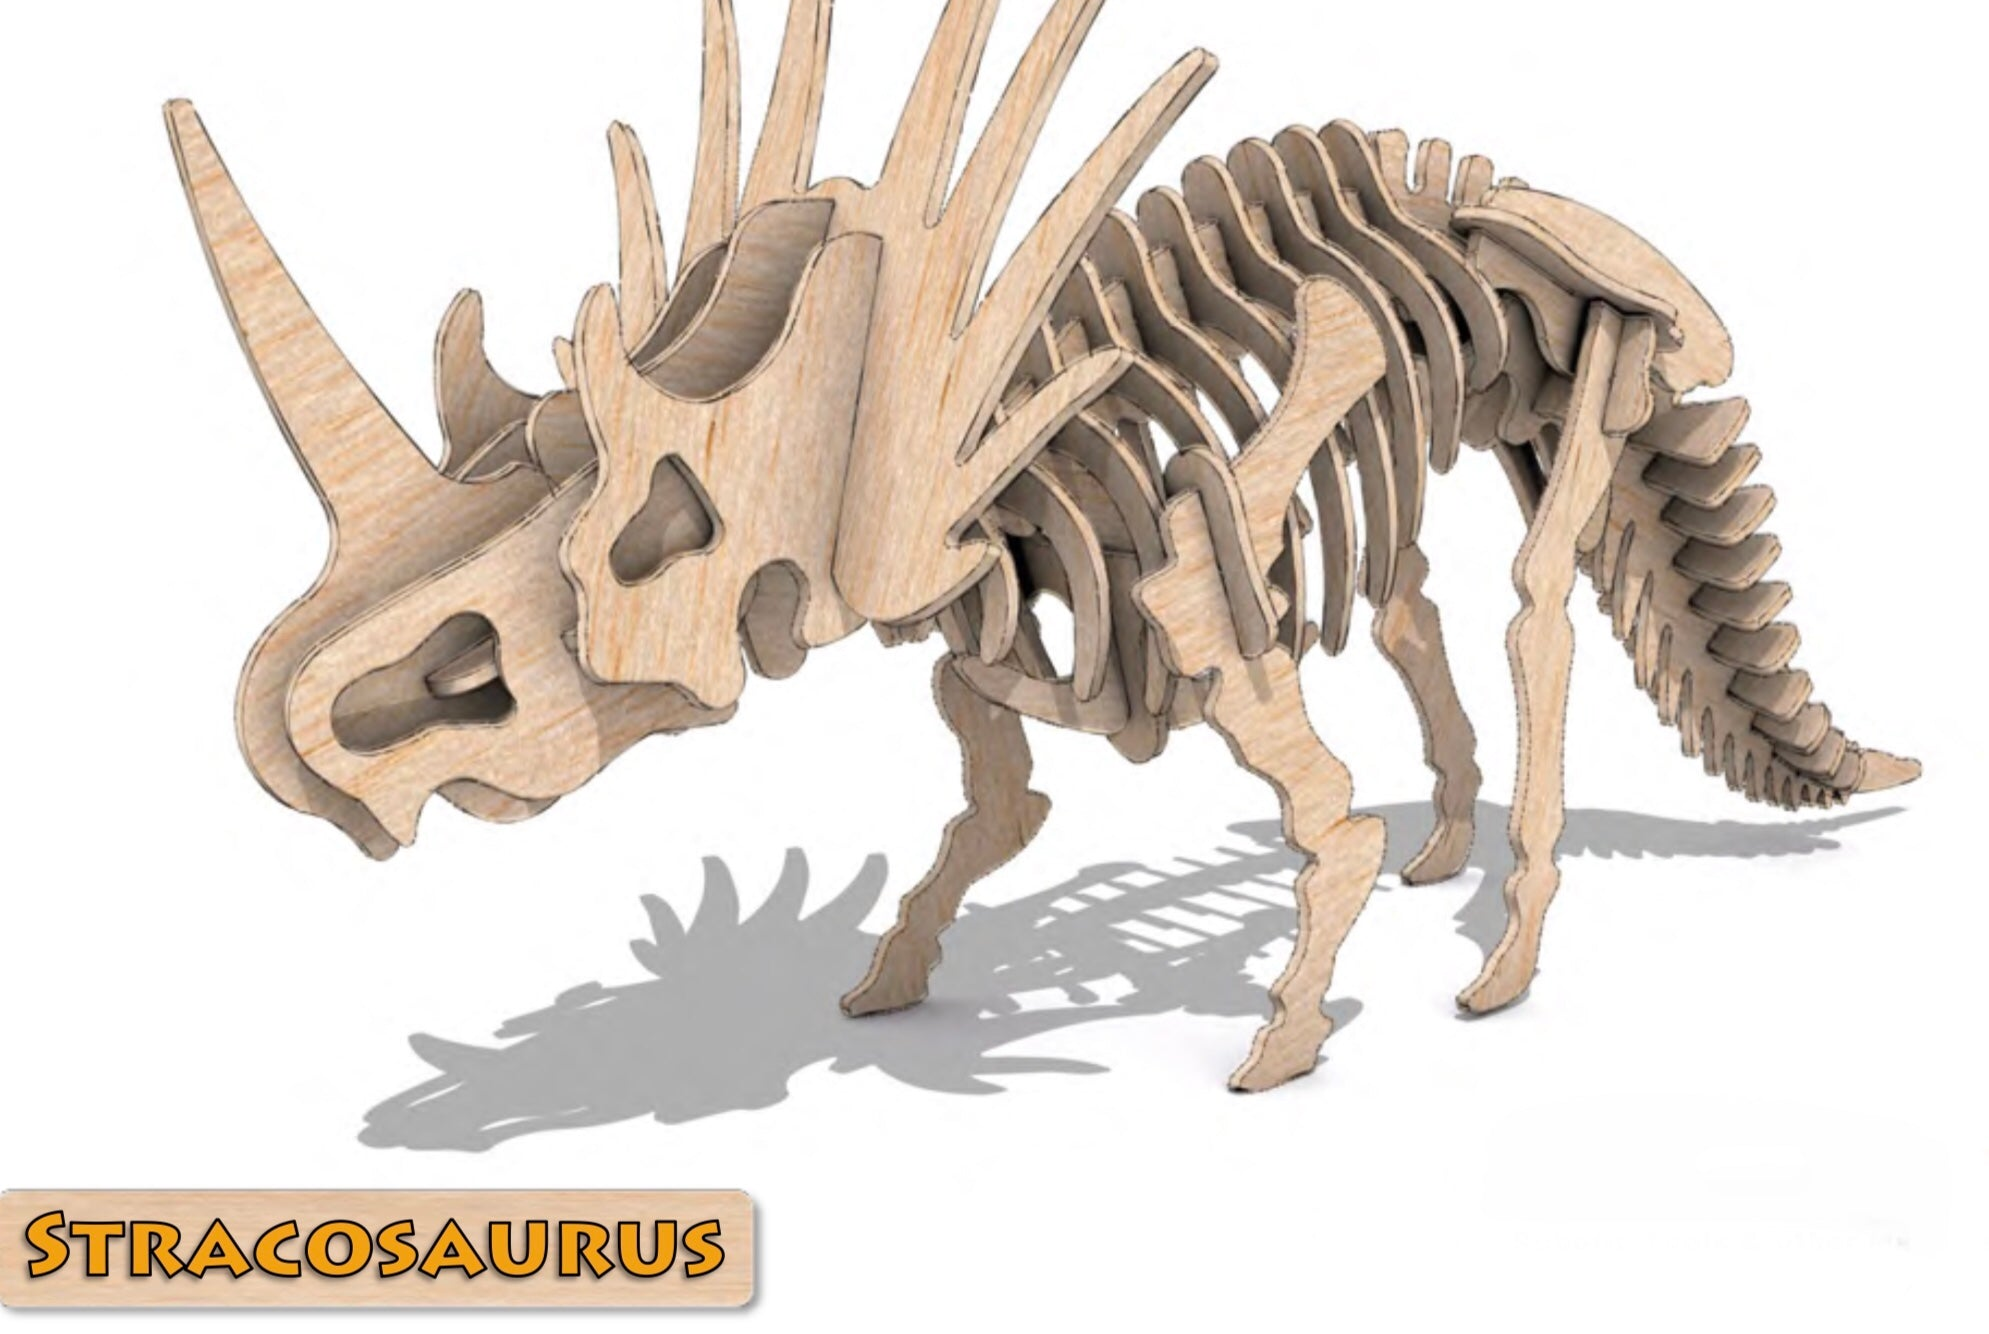 3D Puzzle- Dinosaur Collection: Stracosaurus